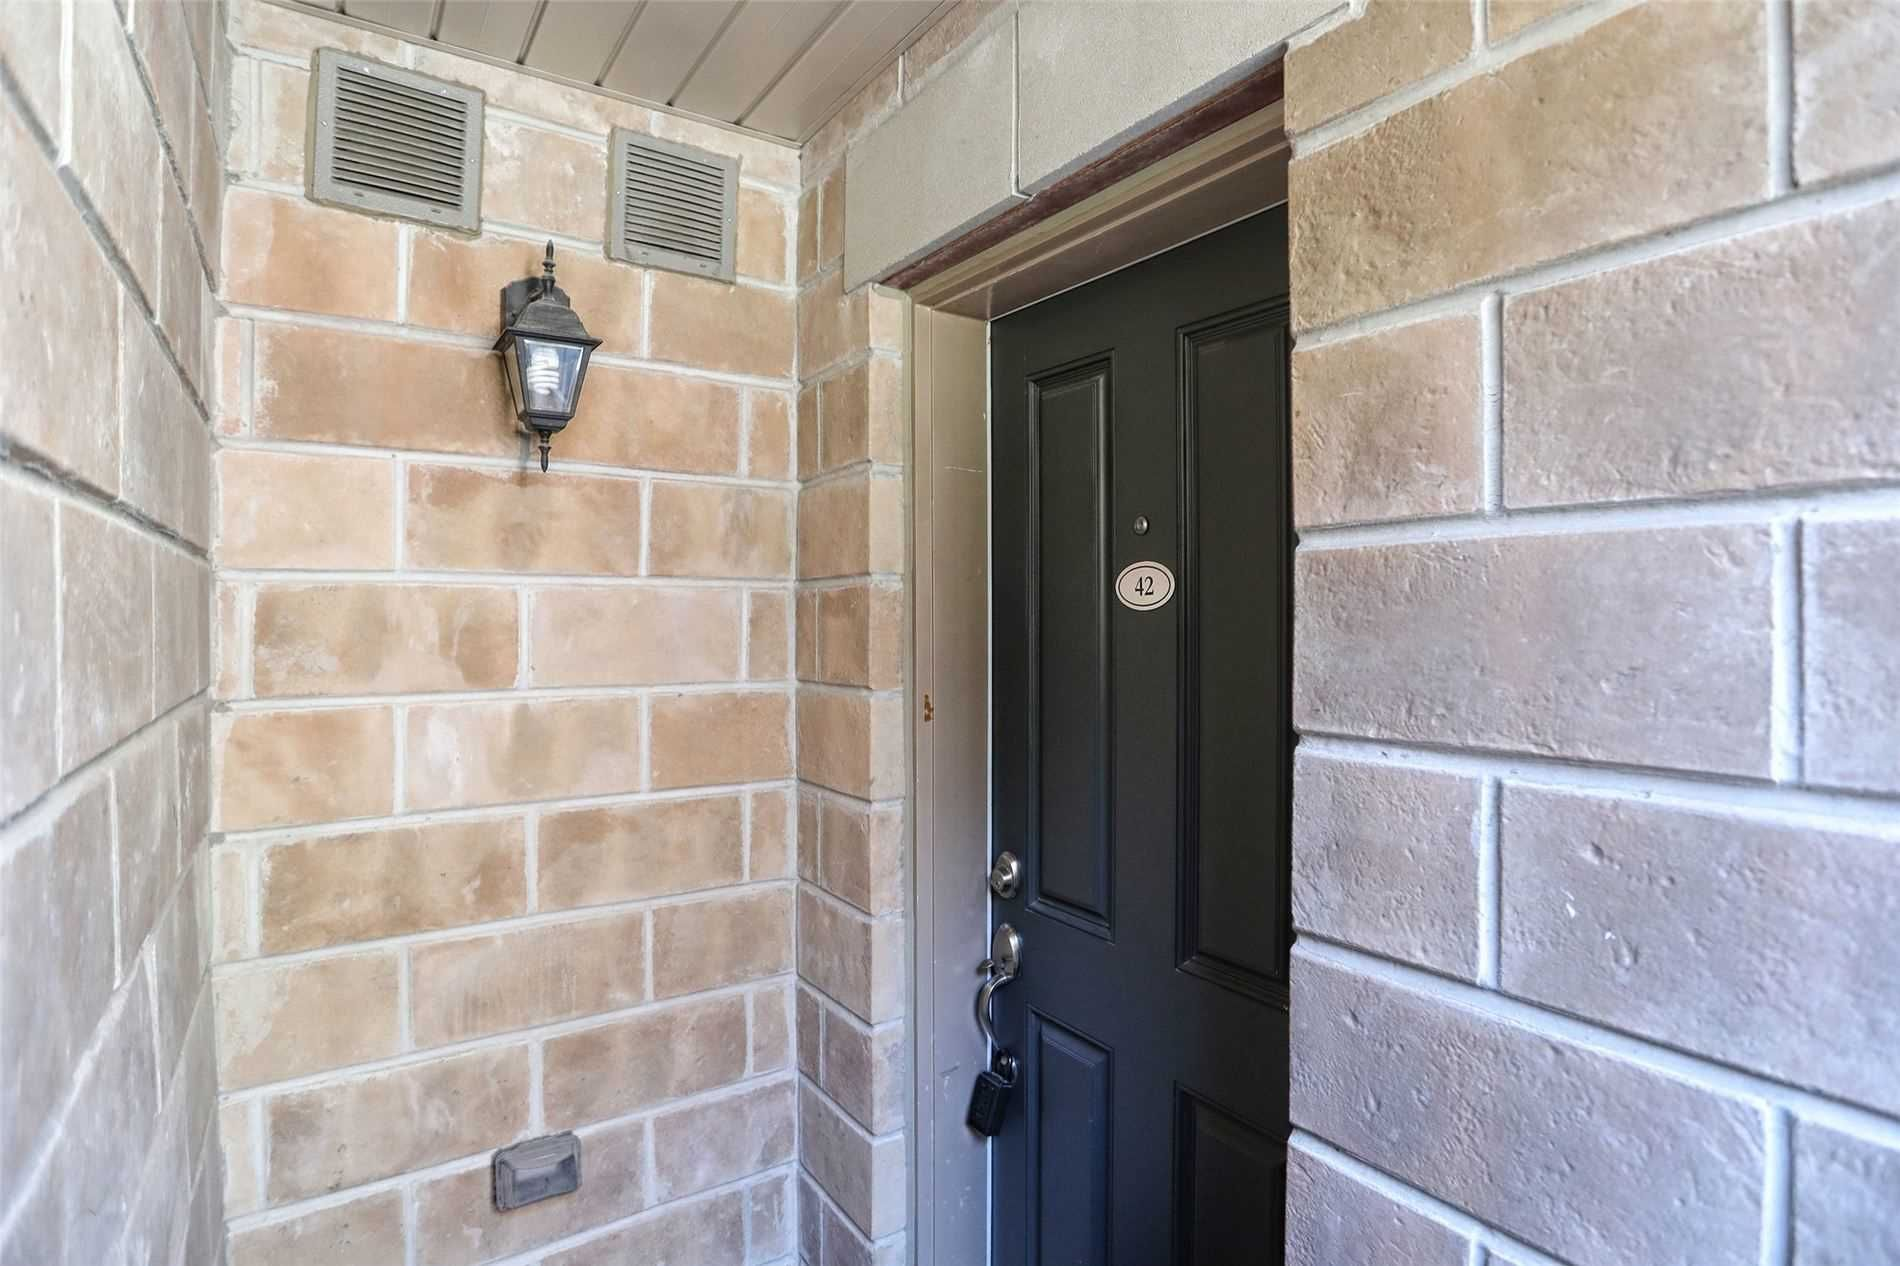 2315 Sheppard Ave, unit 42 for sale in Toronto - image #2